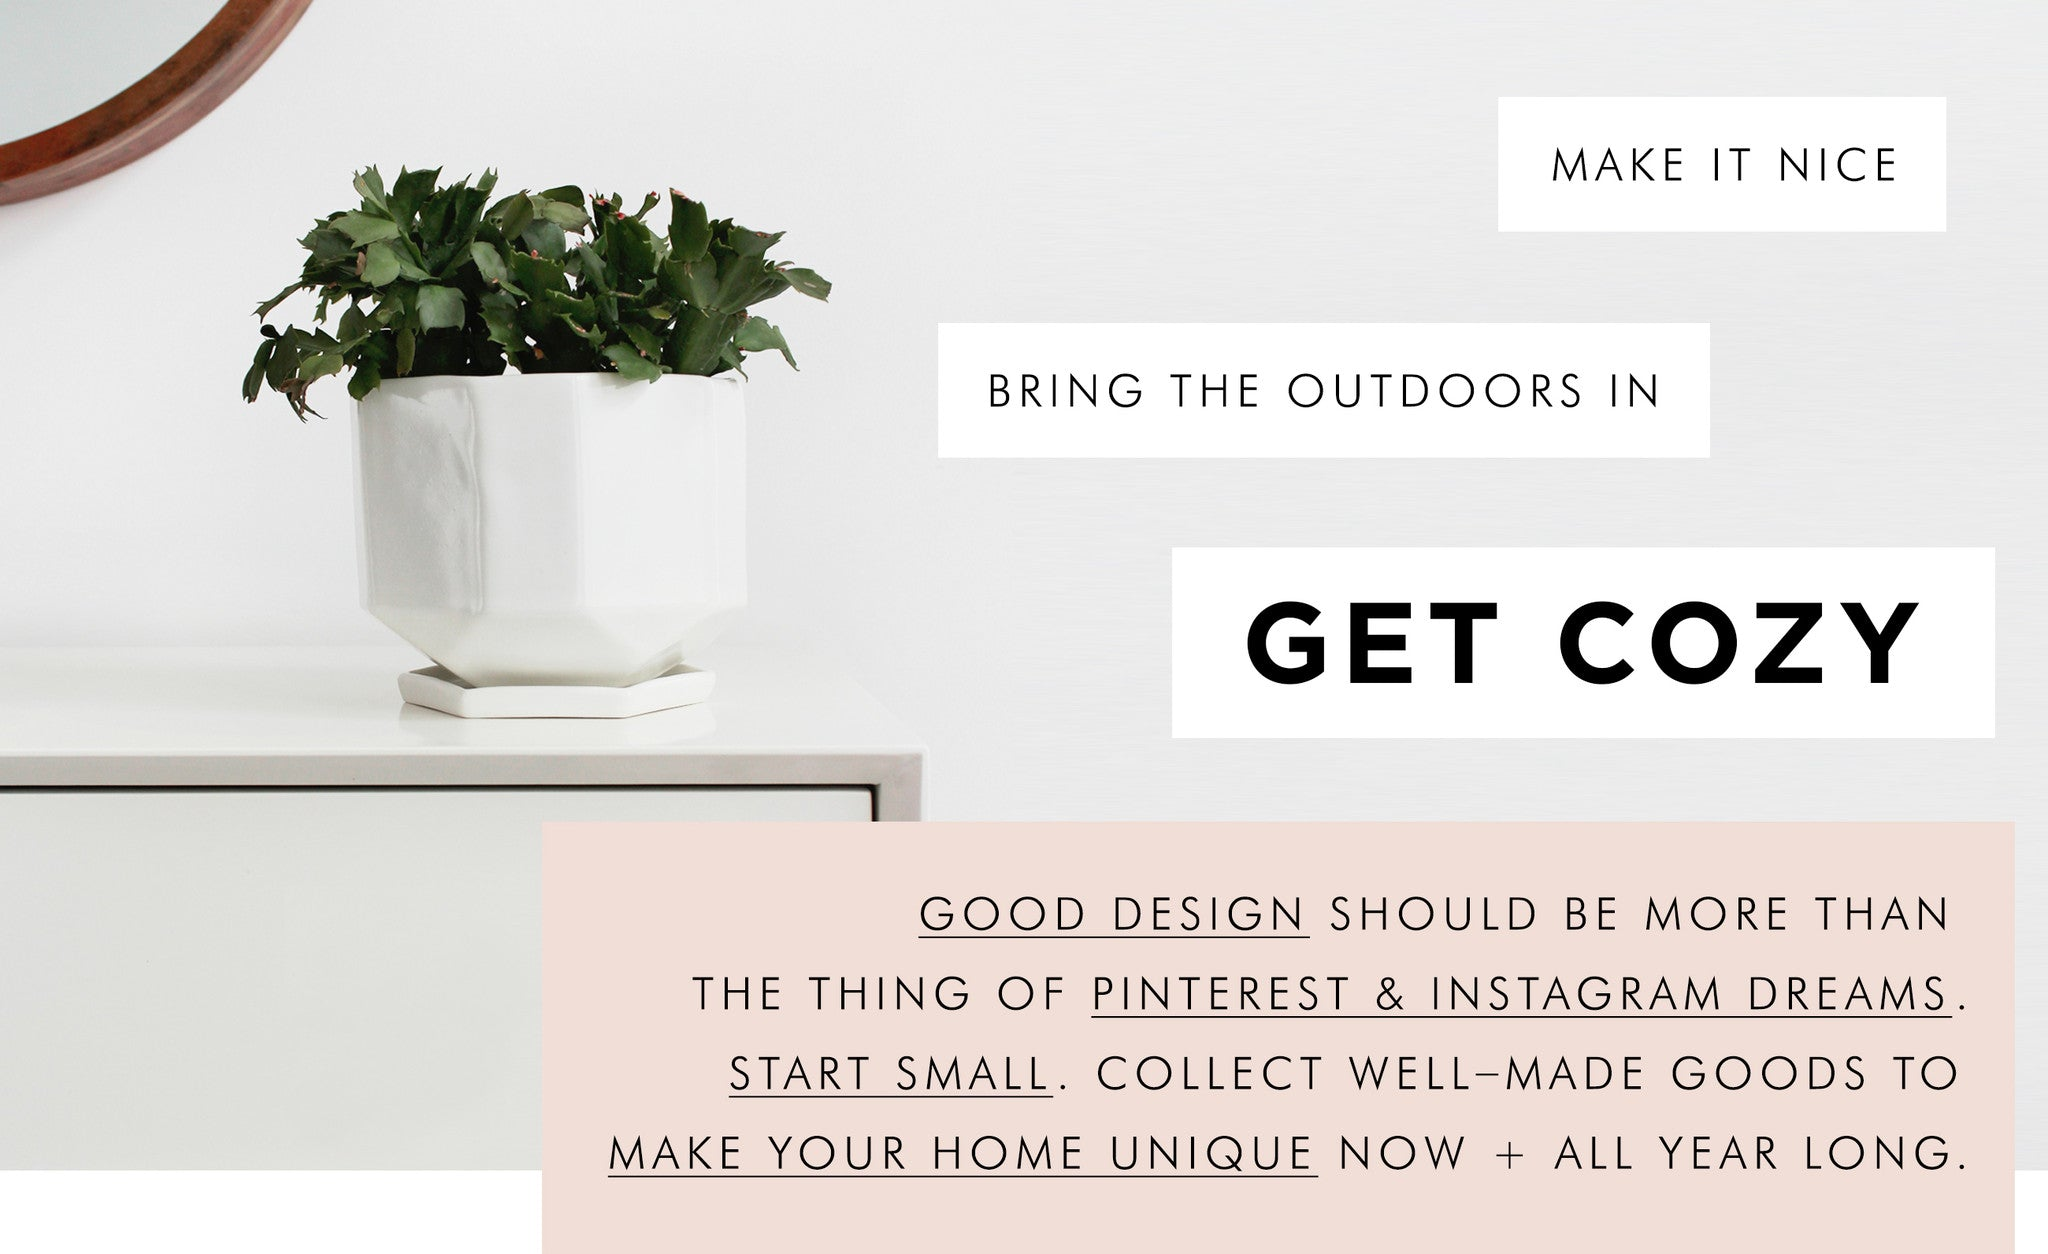 Good design should be more than the thing of Pinterest and Instagram dreams. Start small. Collect well-made goods to make your home unique now + all year long.